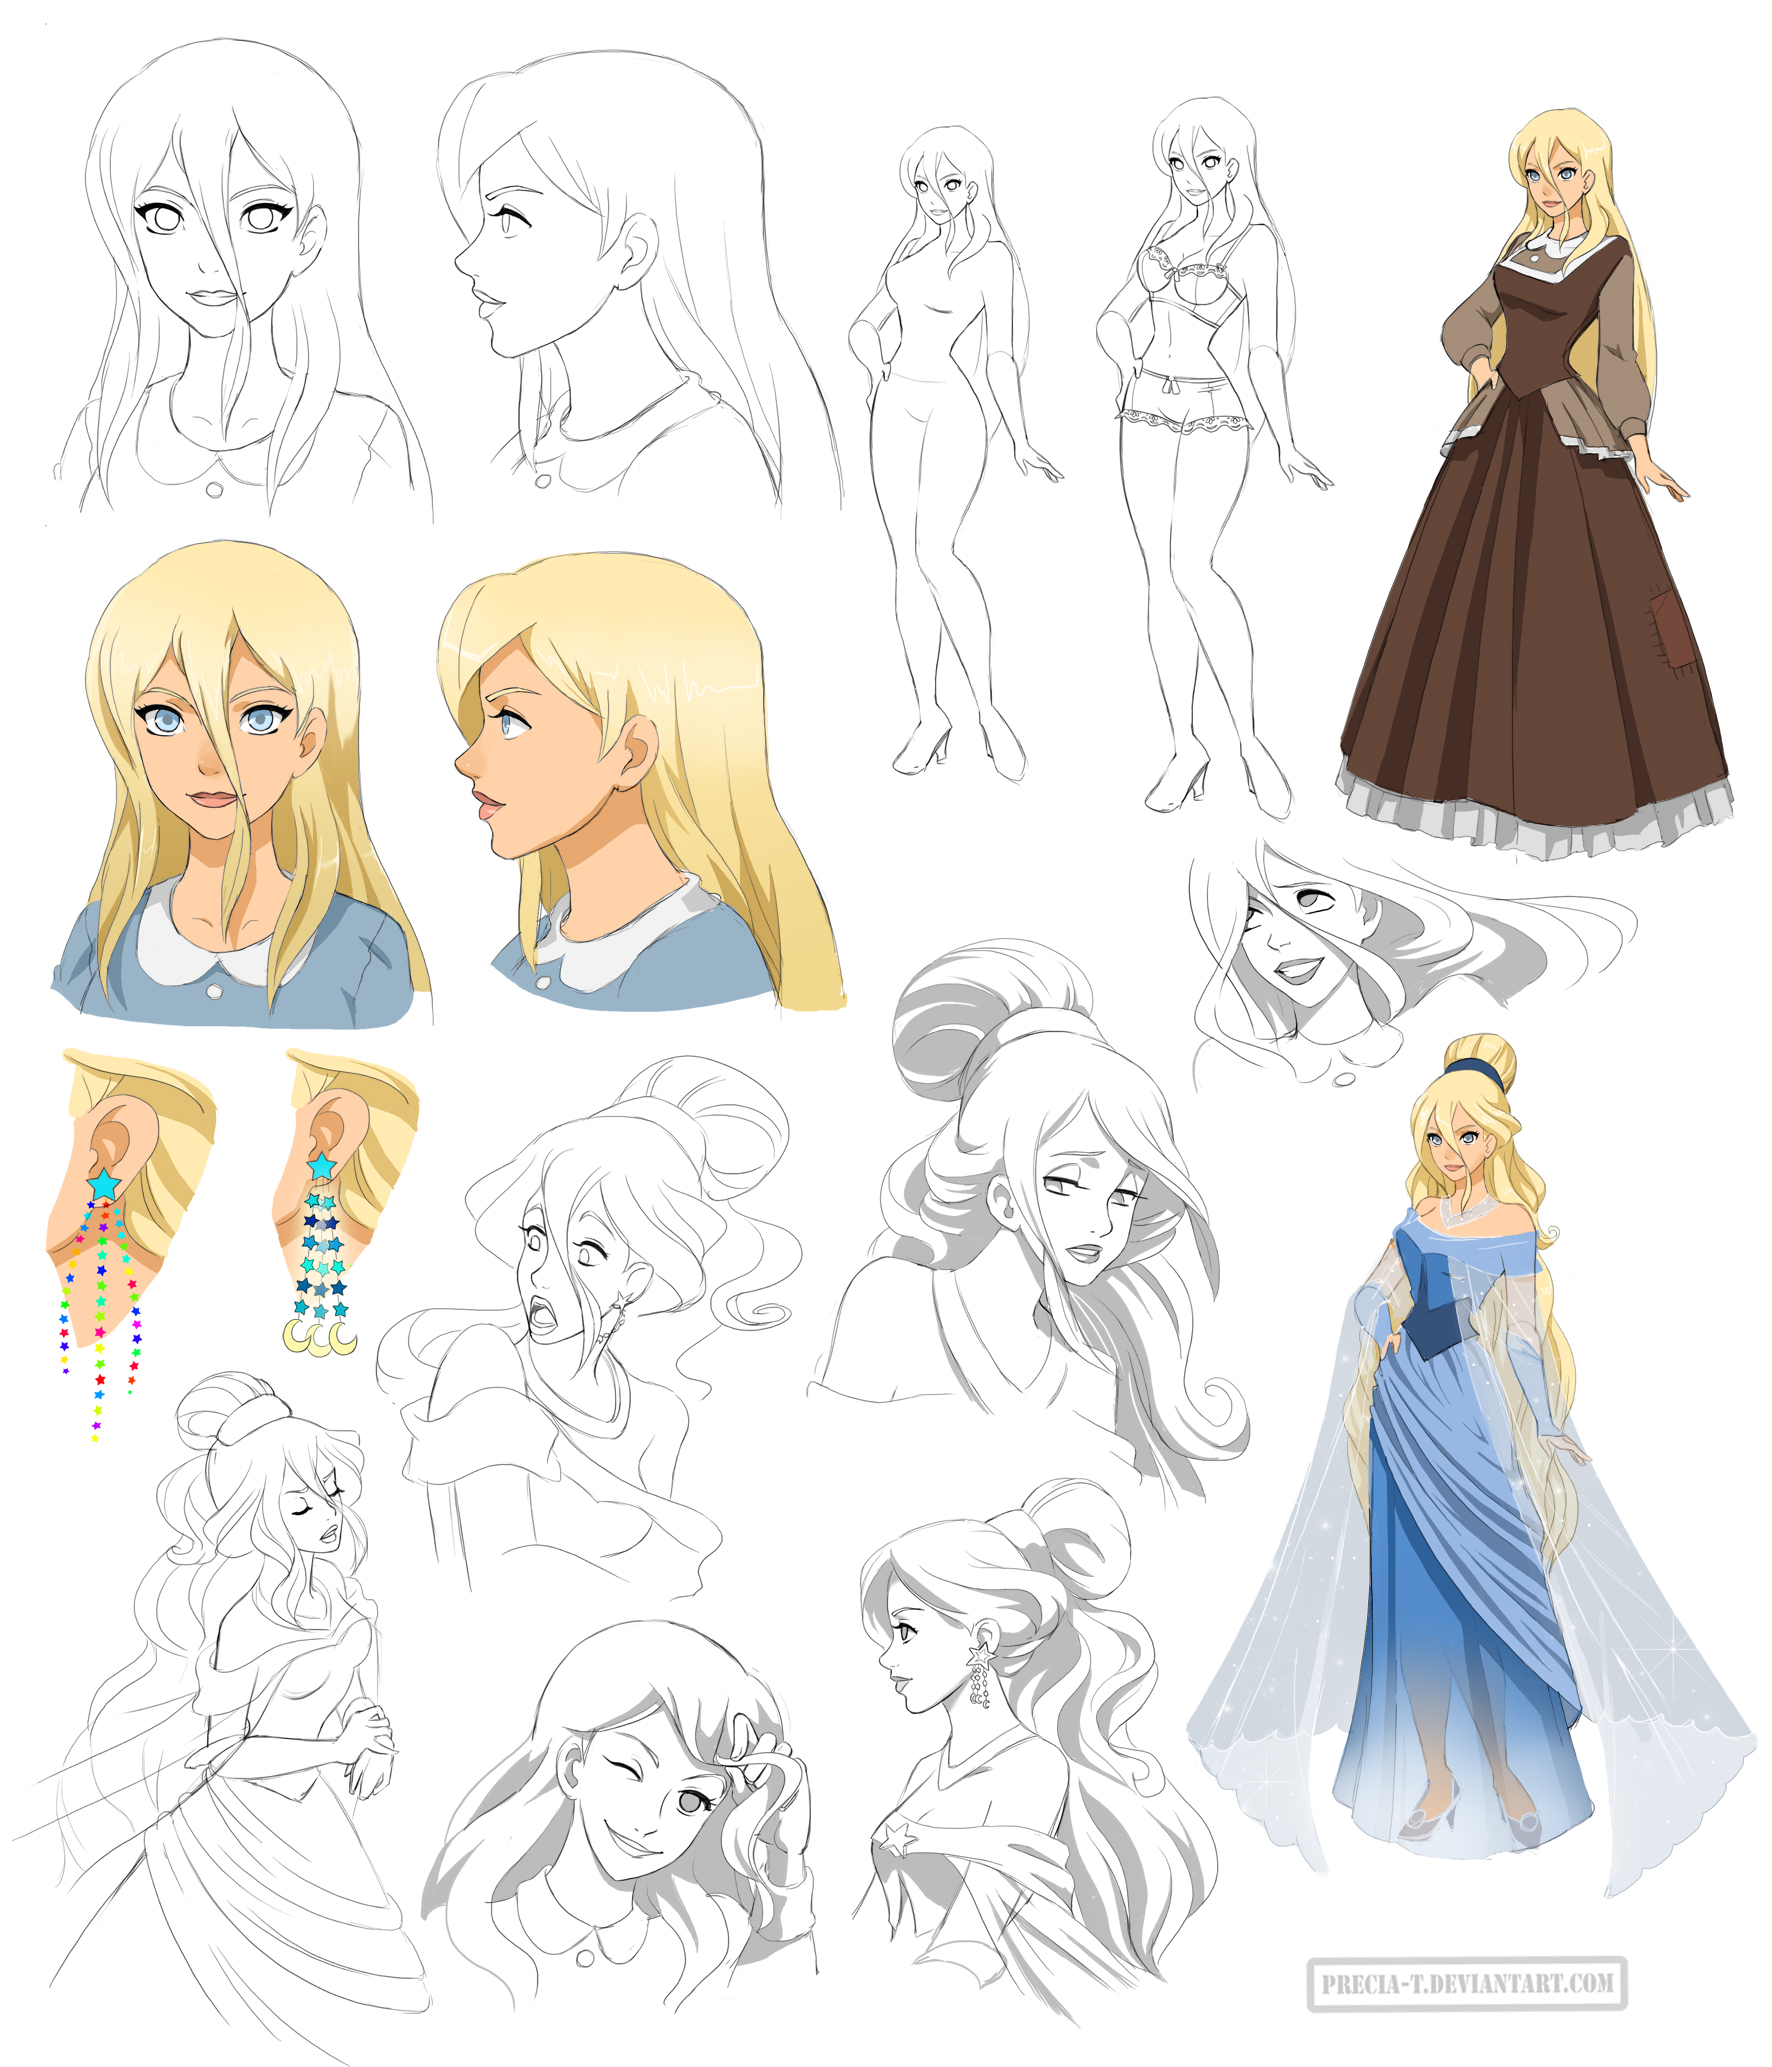 Disney Character Design Study : Disney princess design starina commission by precia t